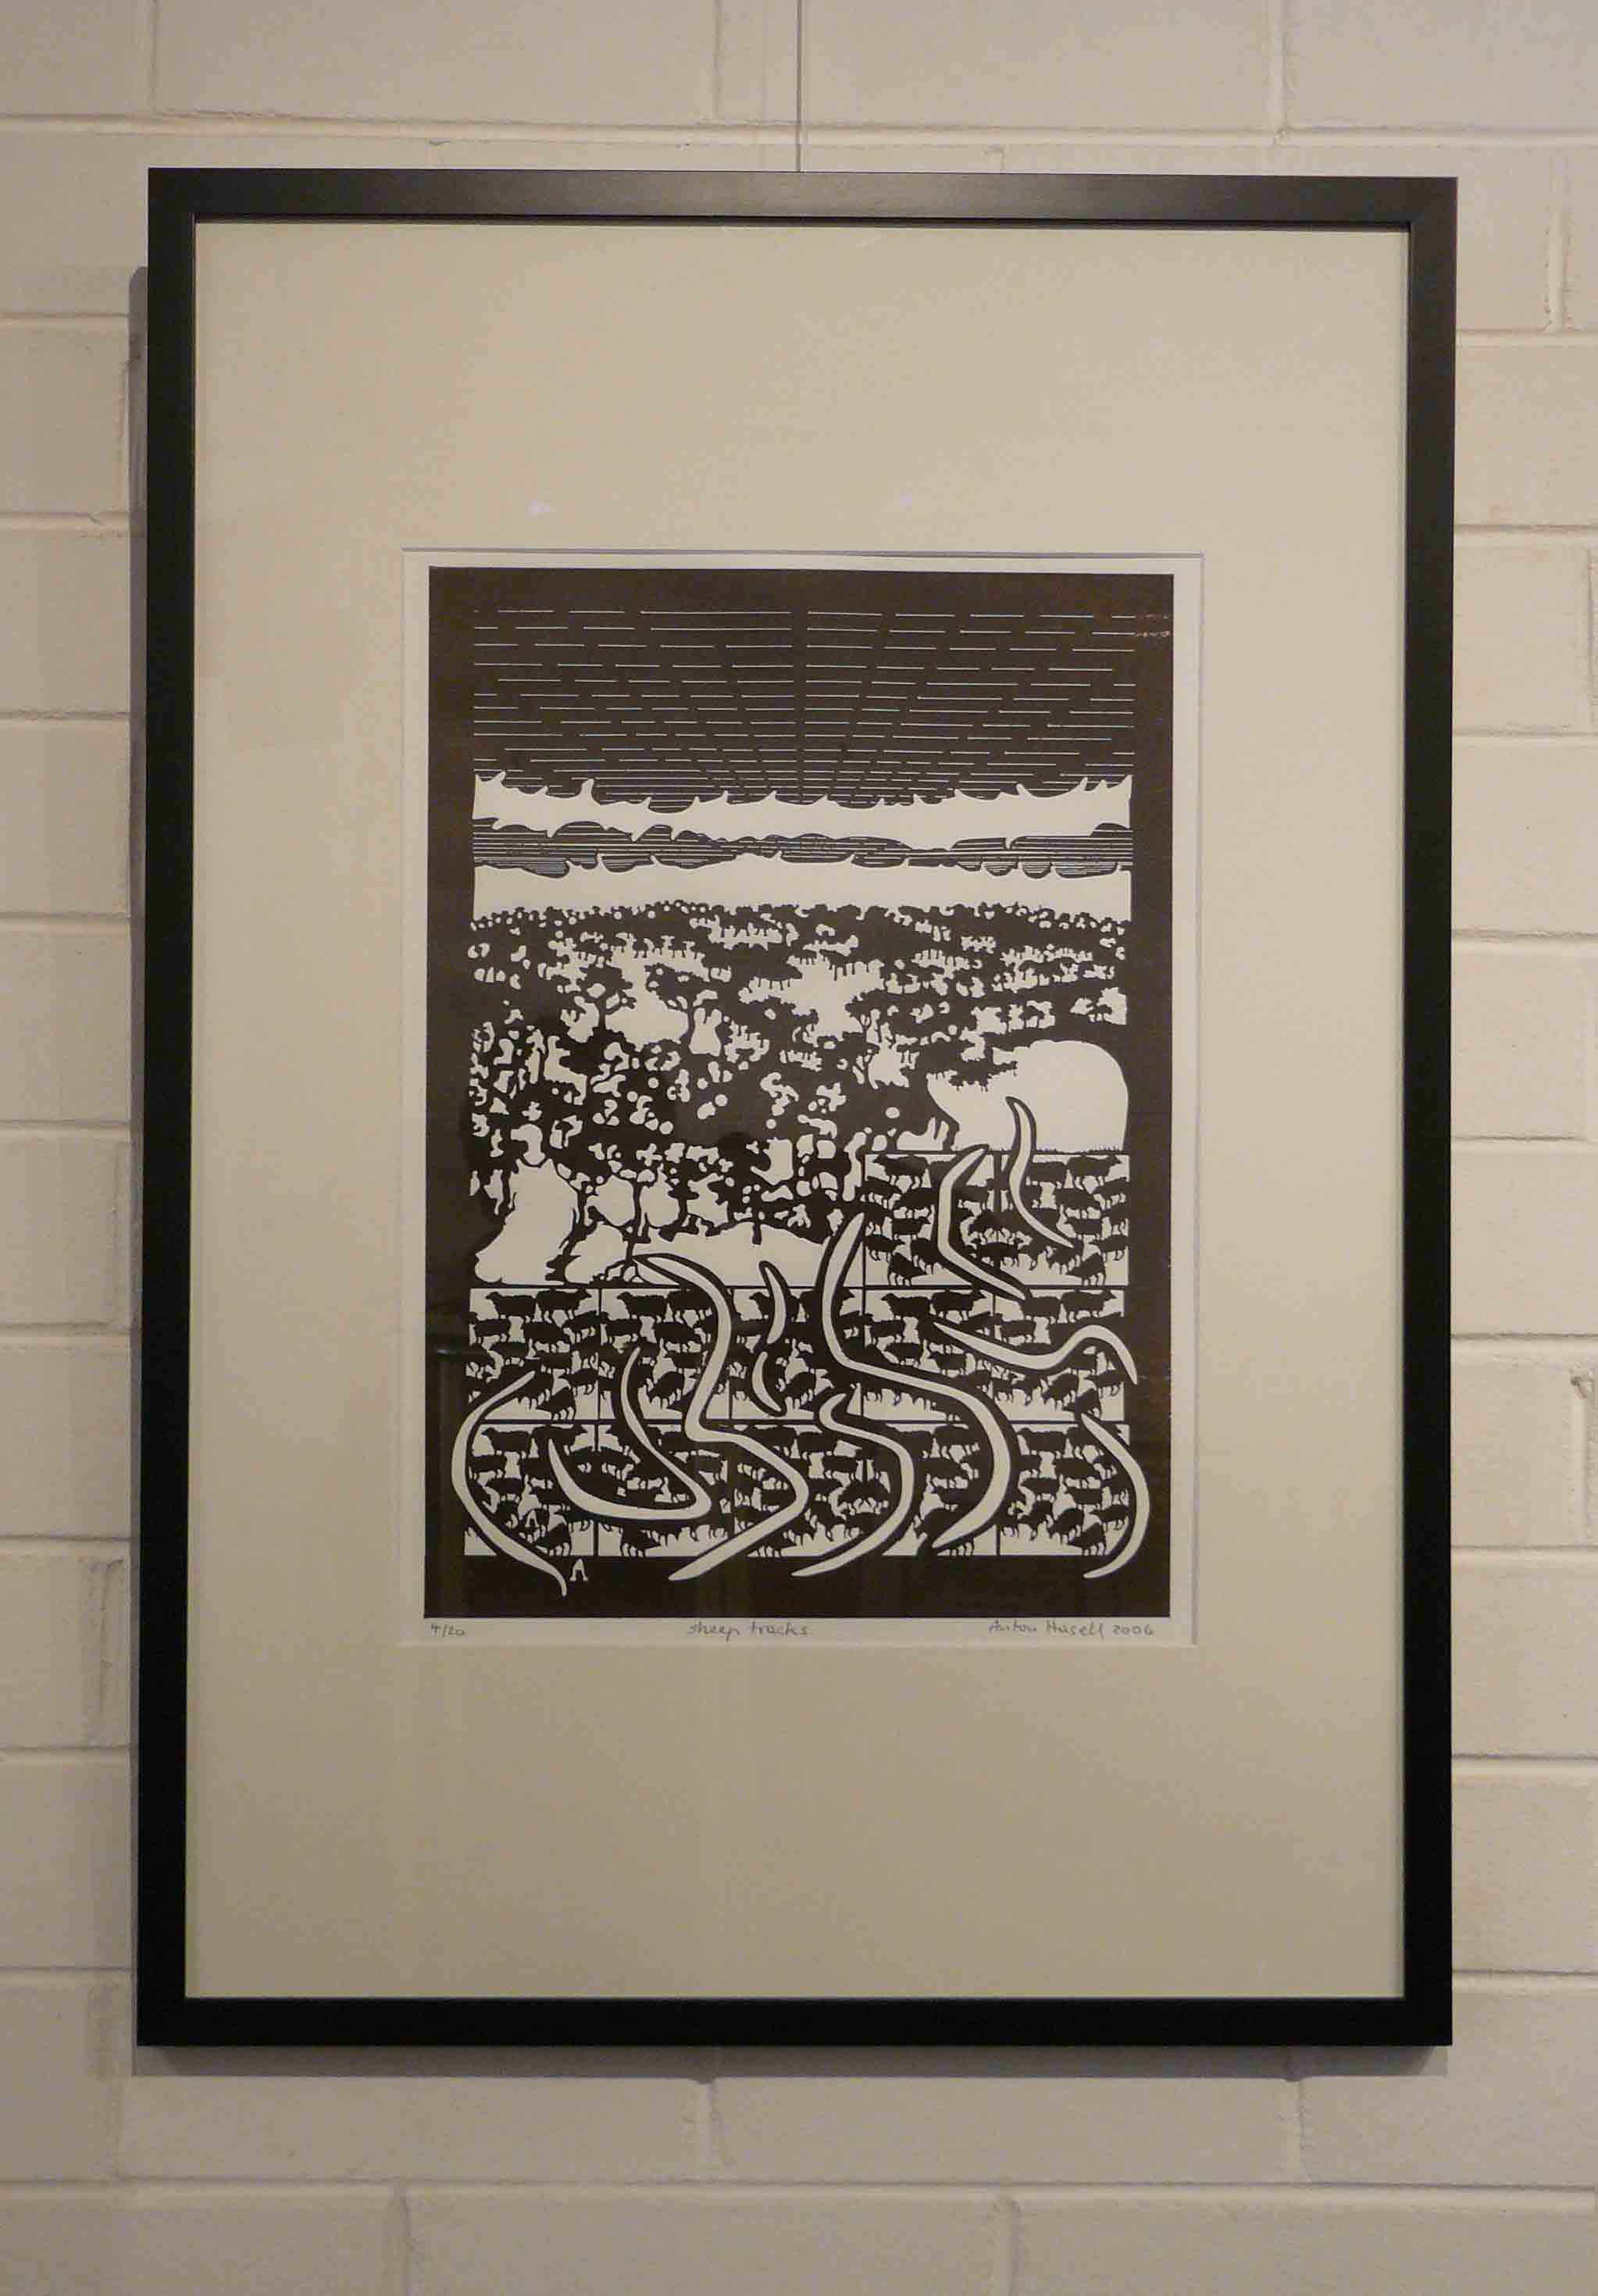 'Sheep tracks' 2006 0.5m by0.4m  laser cut plate relief print